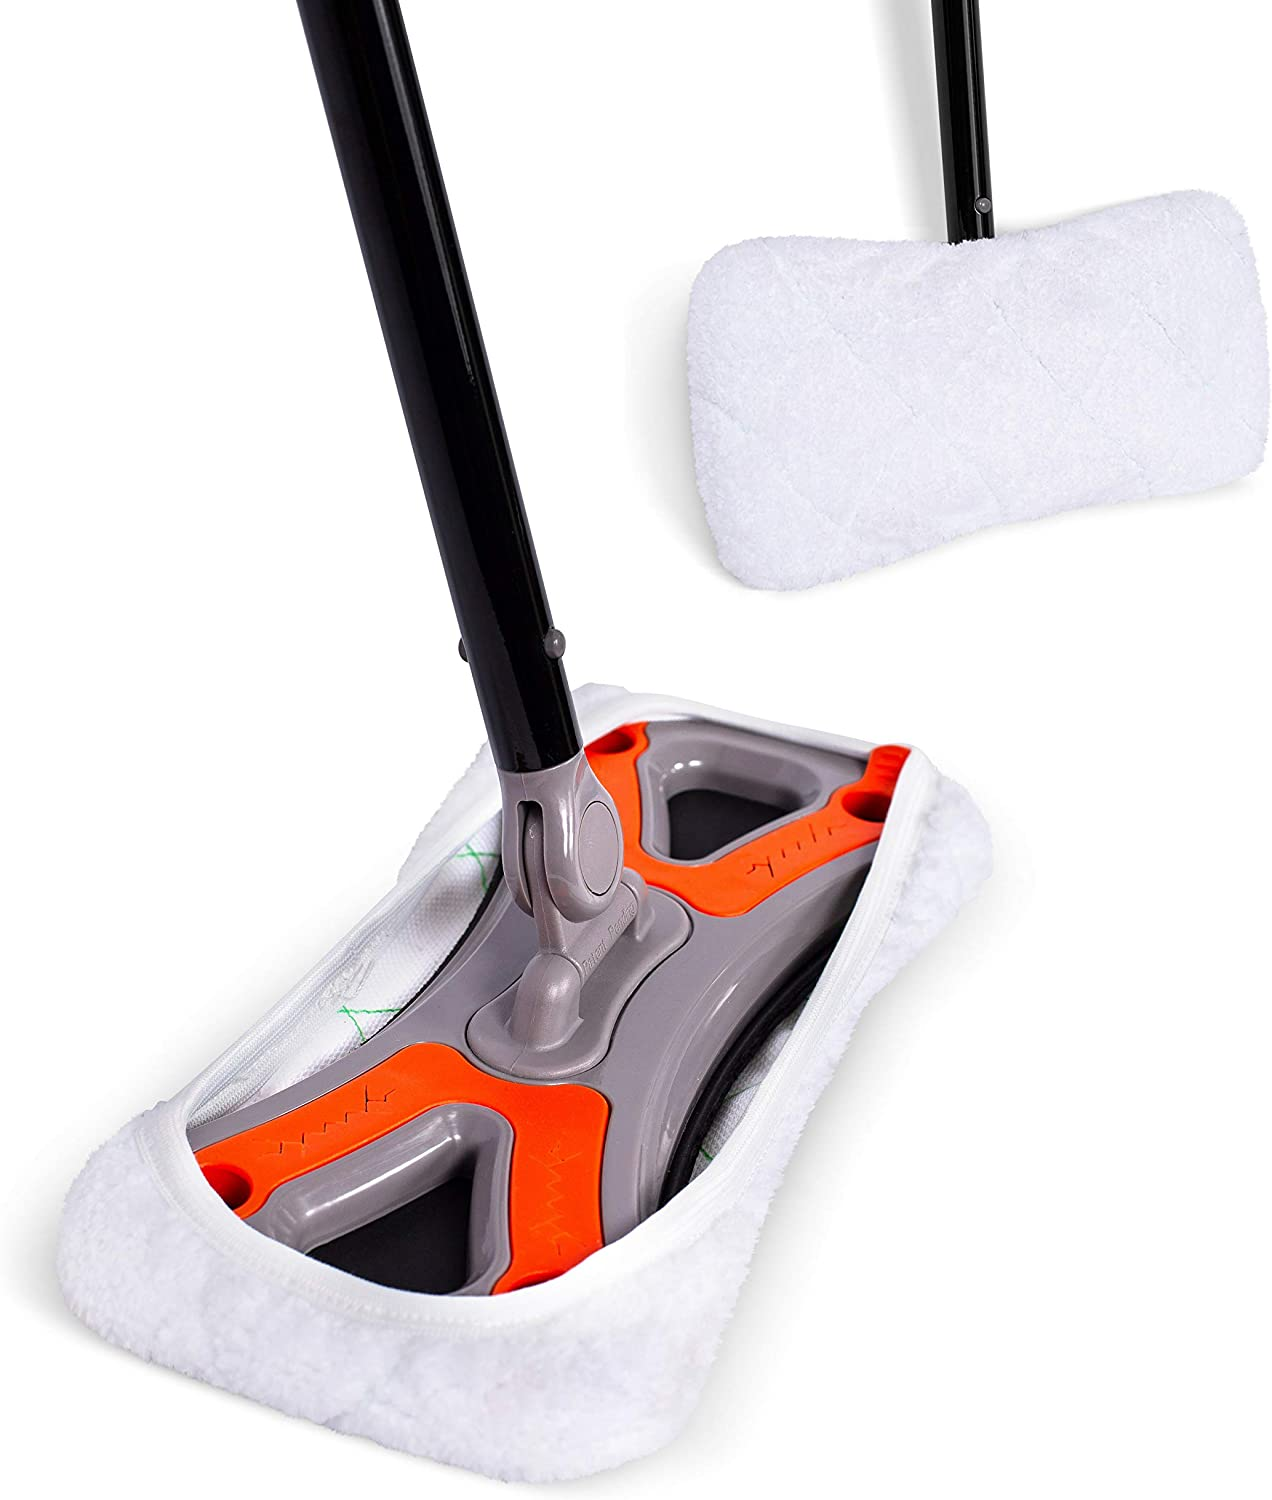 Dust Cleaning Sweeper Mopping - Orange and Grey Durable Mop Set - Lightweight - Great for Kitchen, Home, Garage and Office - Hardwood Tile Laminate Floor Cleaner - Removable Slipper